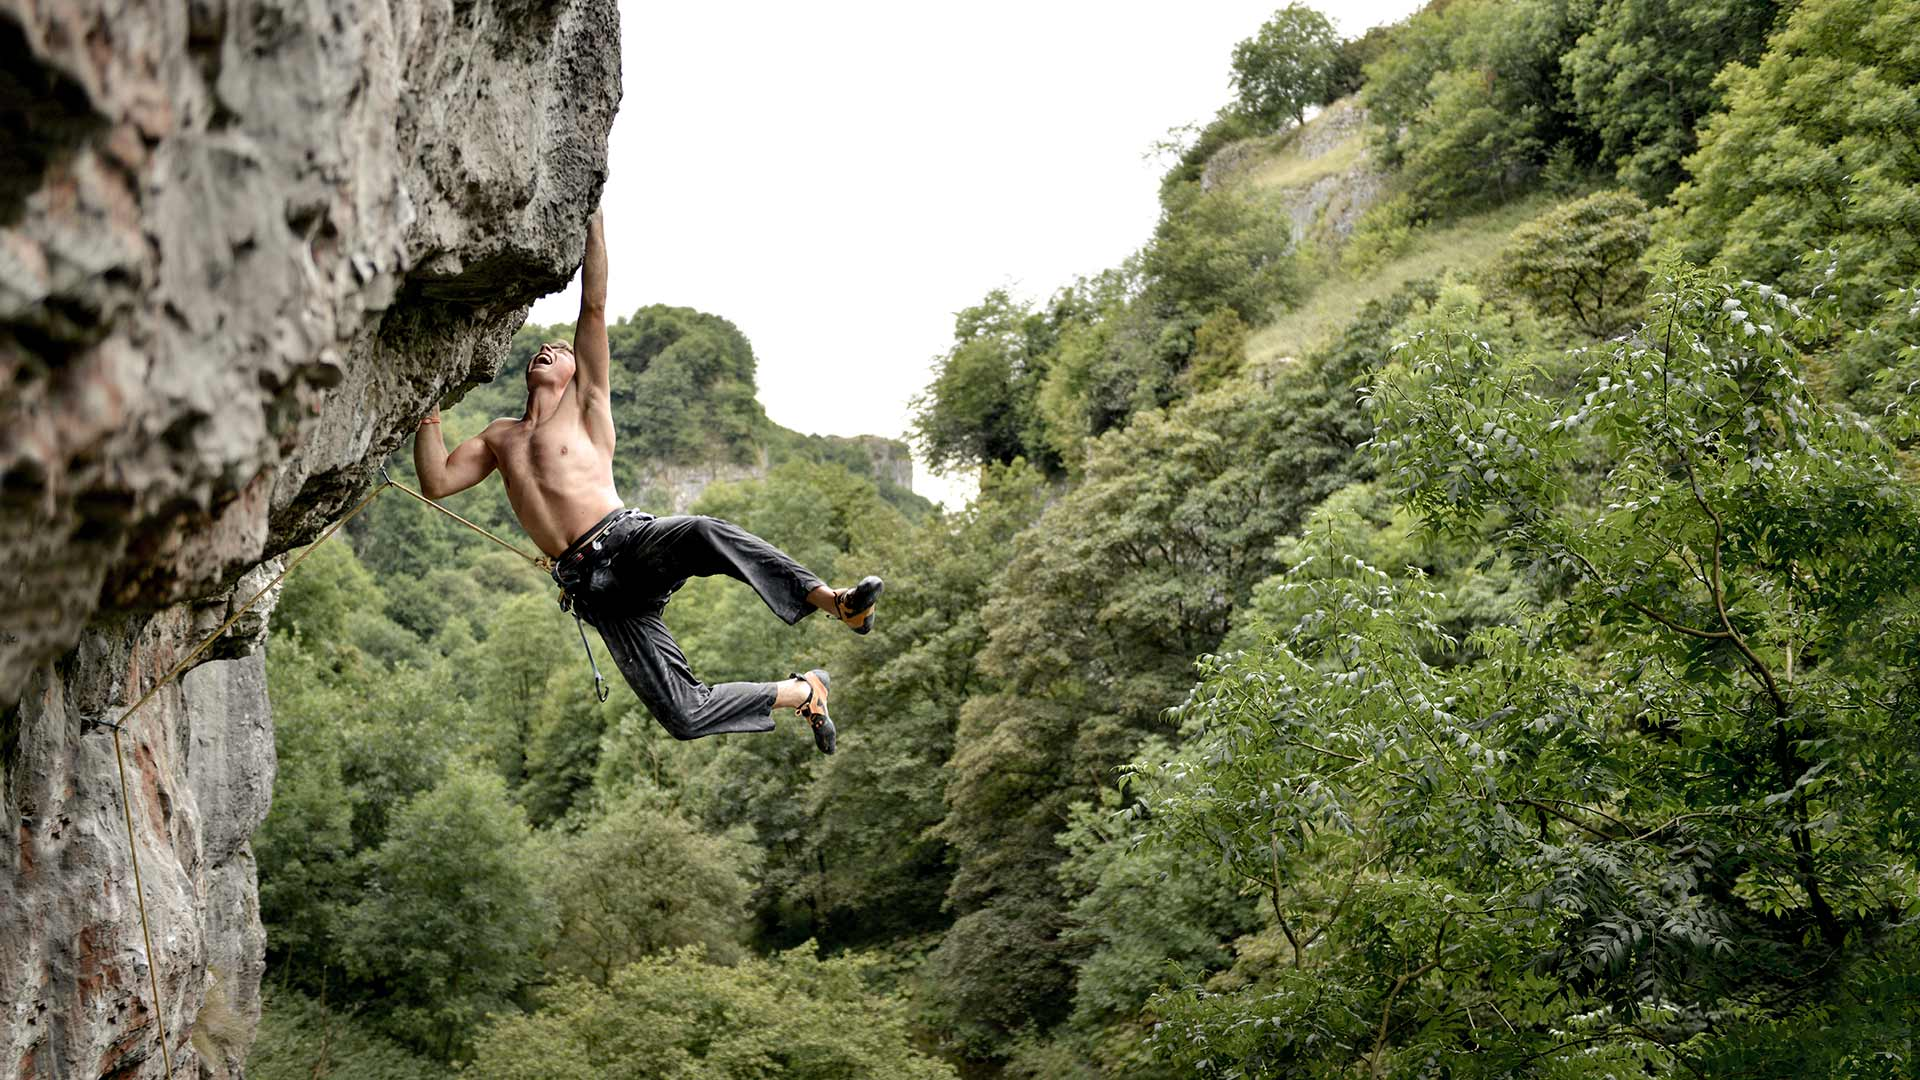 climbing_lifestyle_sheffield_brendon_tyreee_photography